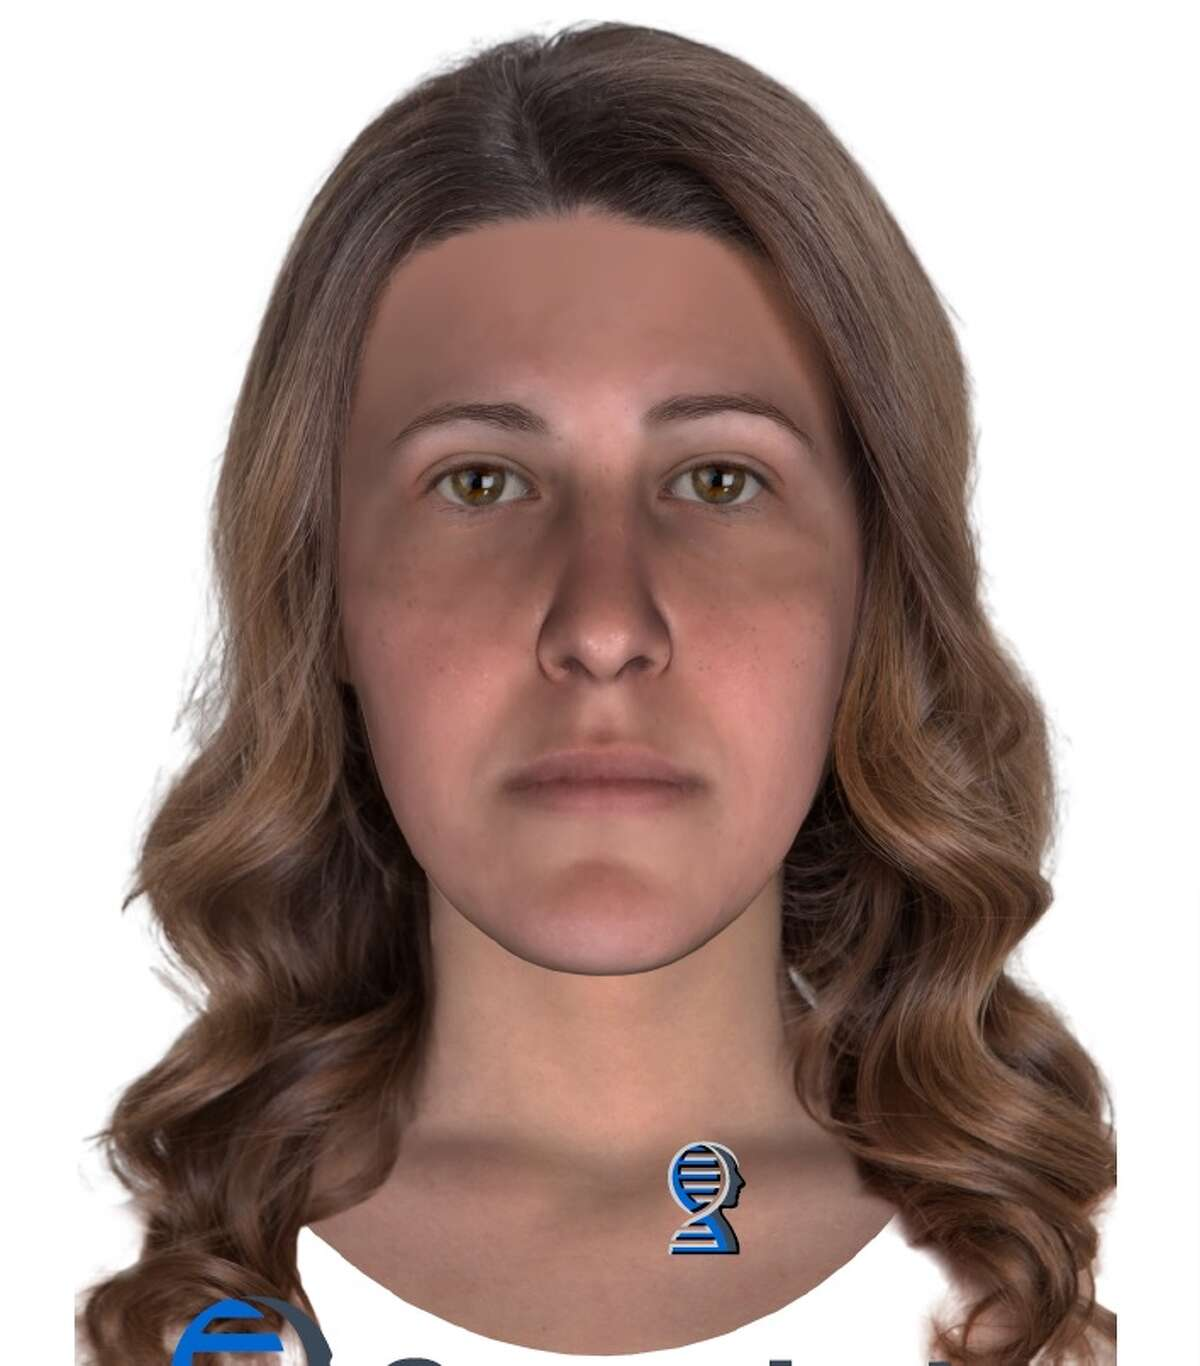 A digital composite image and DNA analysis released by the League City Police Department of a woman whose body was found in a field near Calder Road in 1991. The analysis indicates the woman had family that originated in Louisiana.